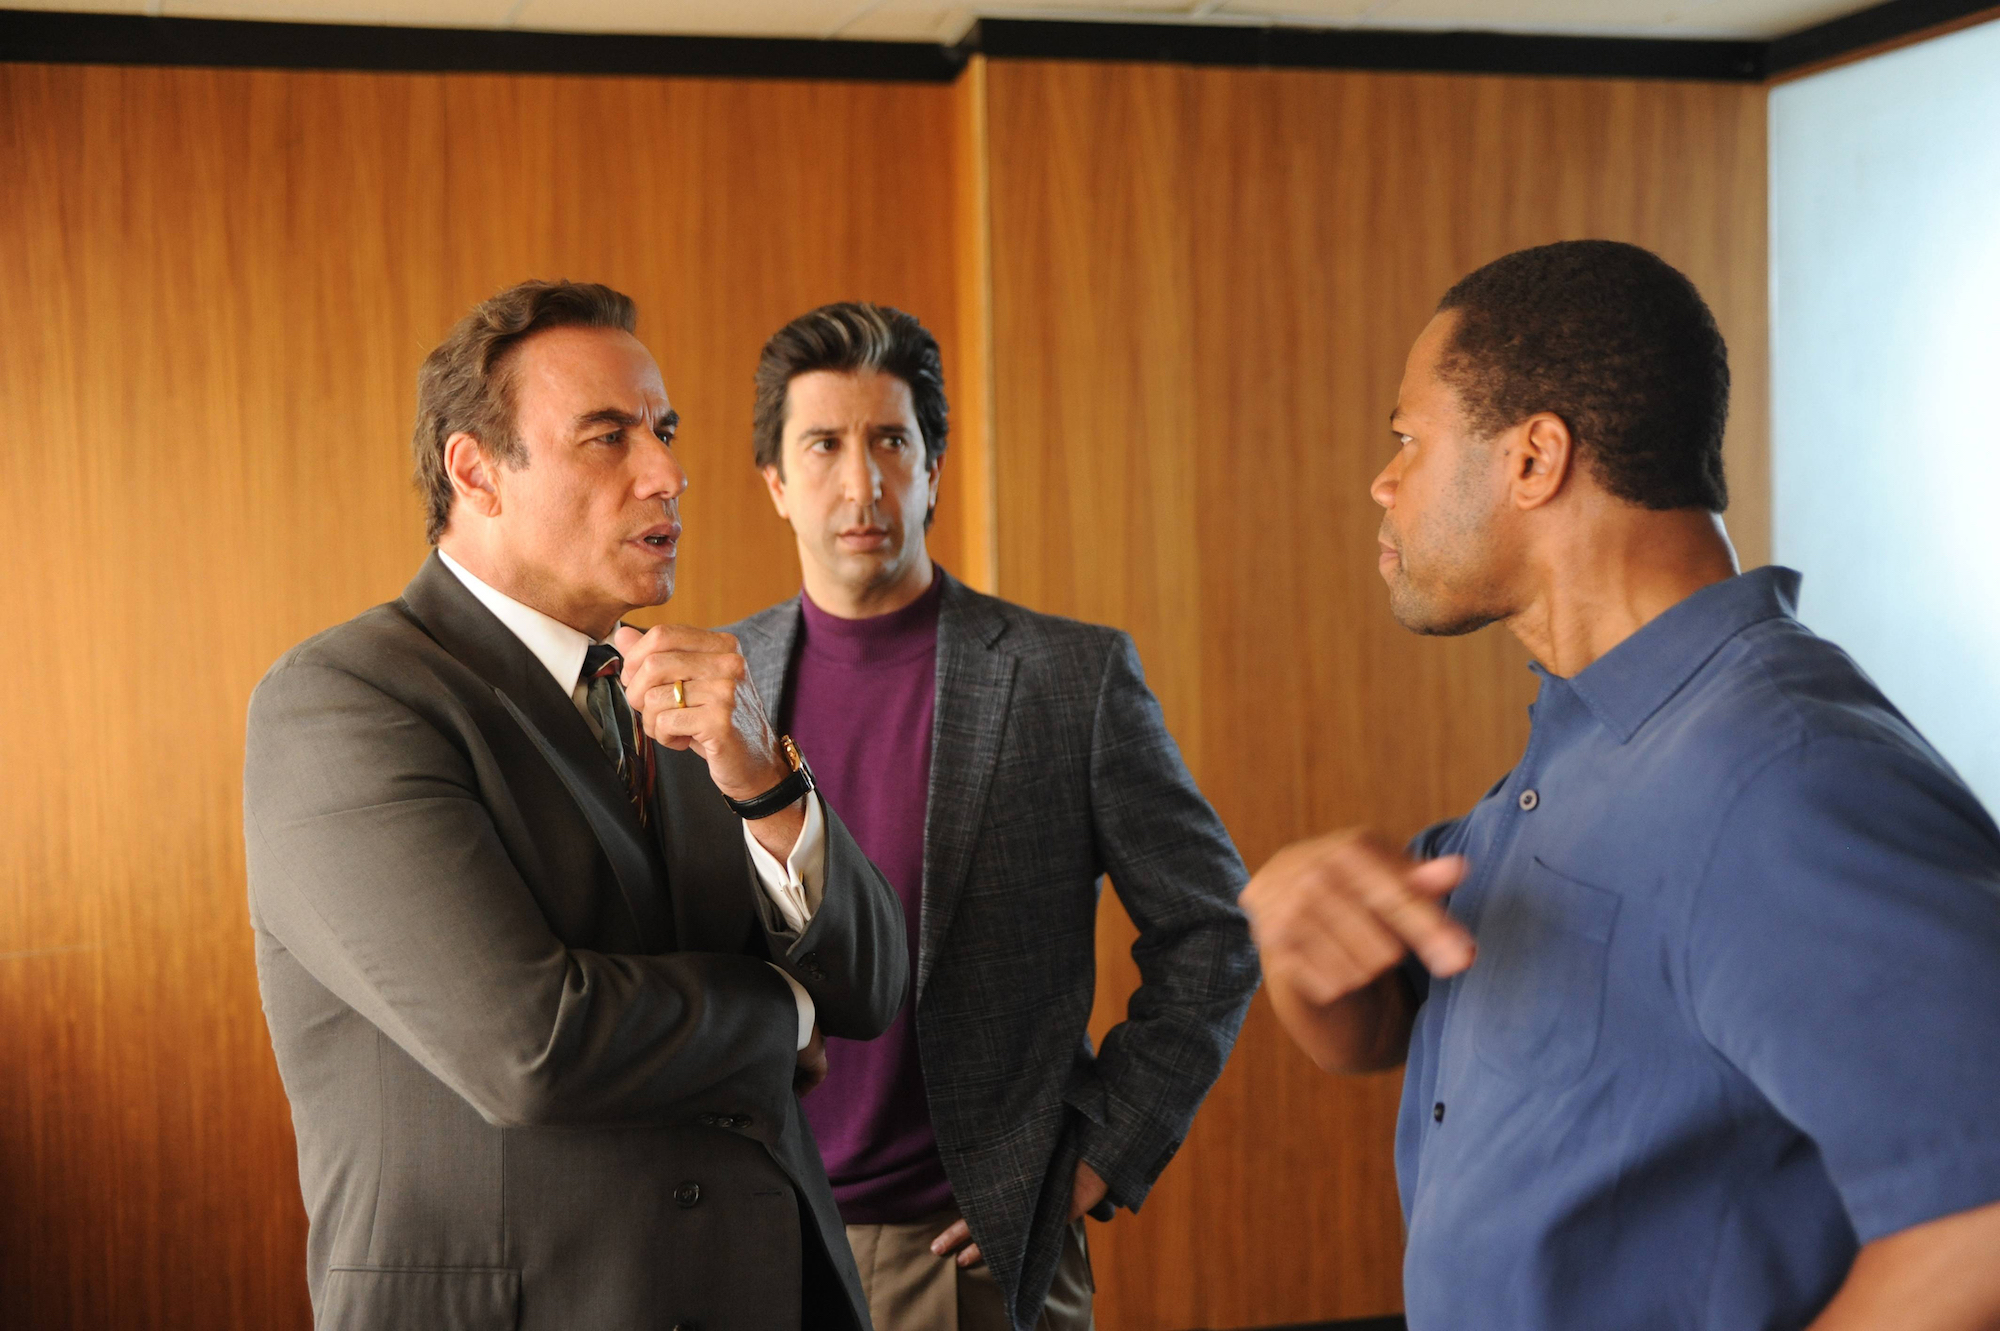 The People v. O.J. Simpson John Travolta David Schwimmer